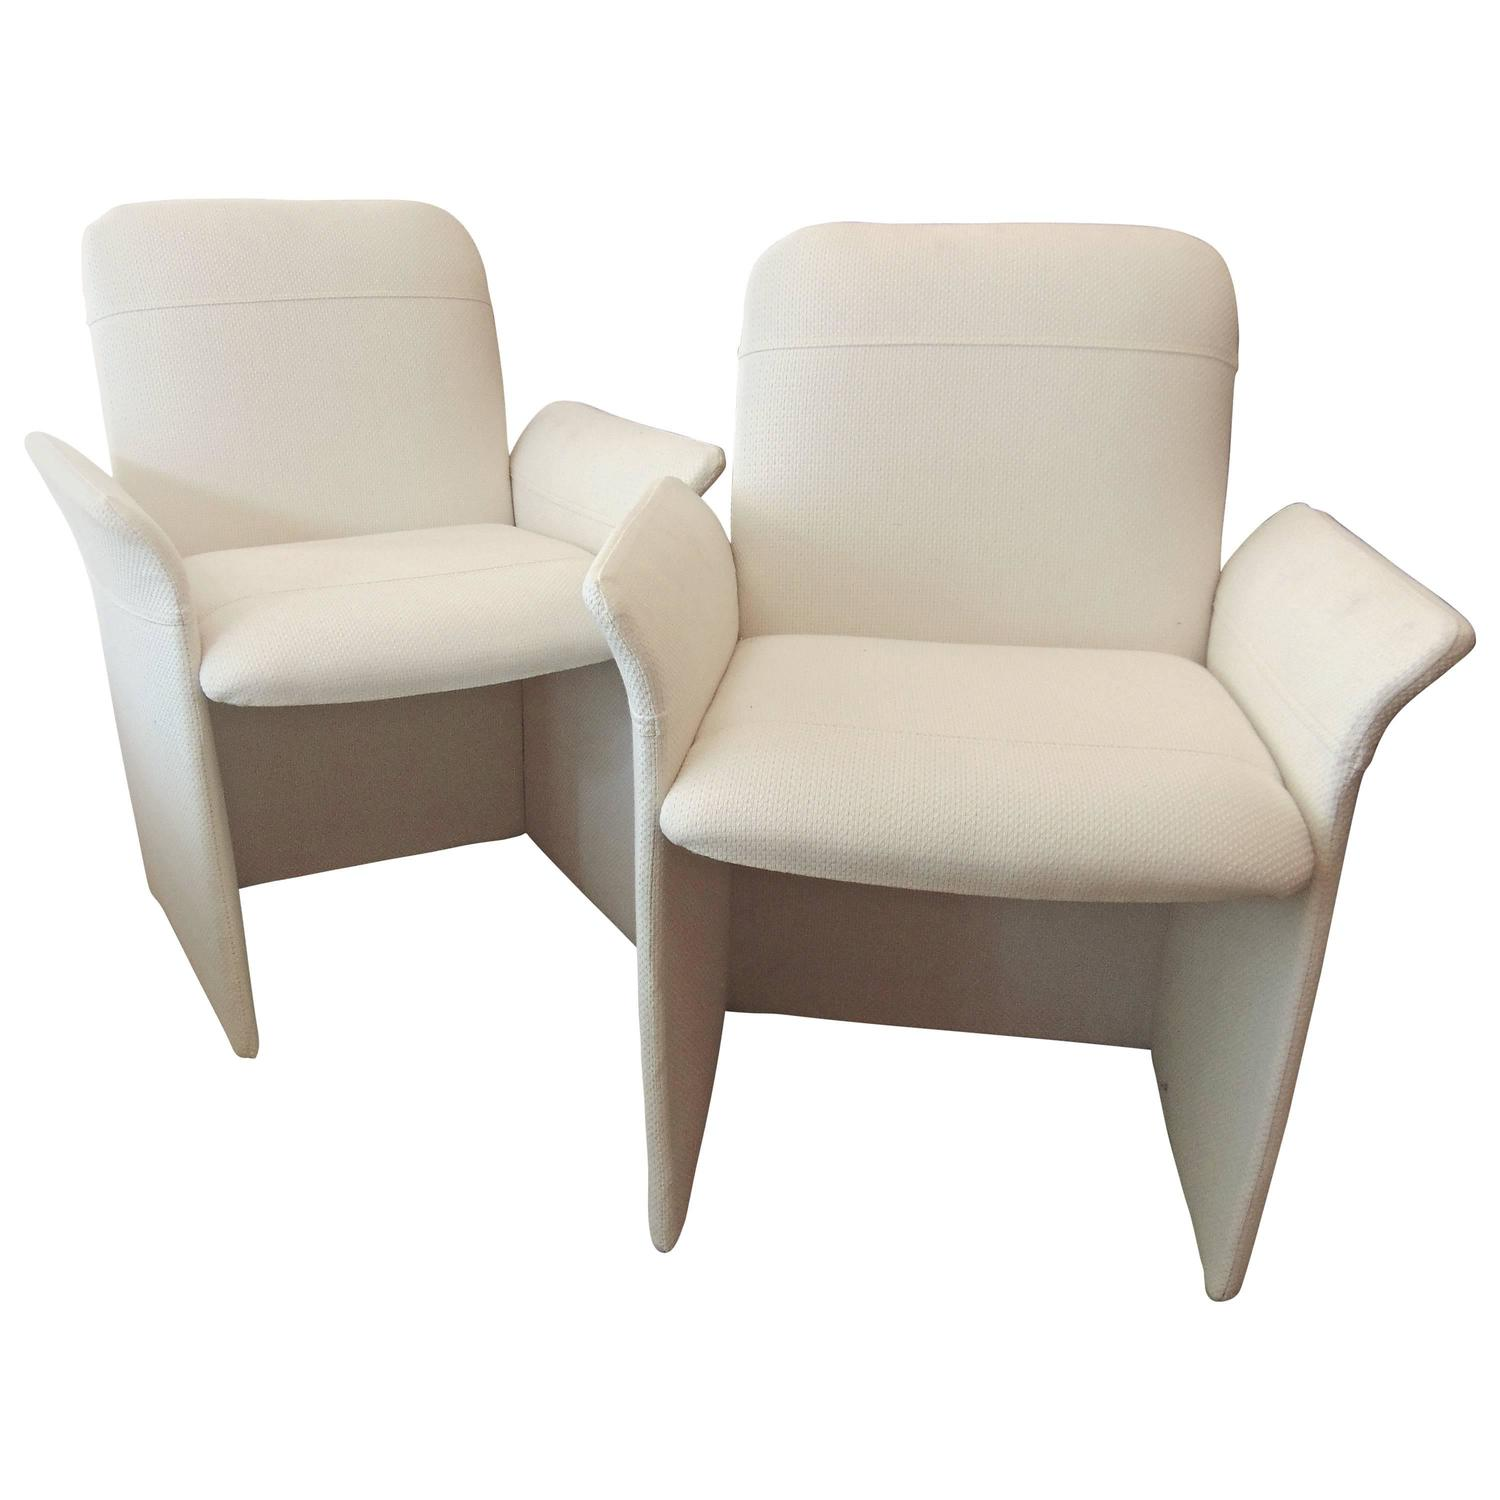 white upholstered chairs french yellow chair pair of mid century modern at 1stdibs